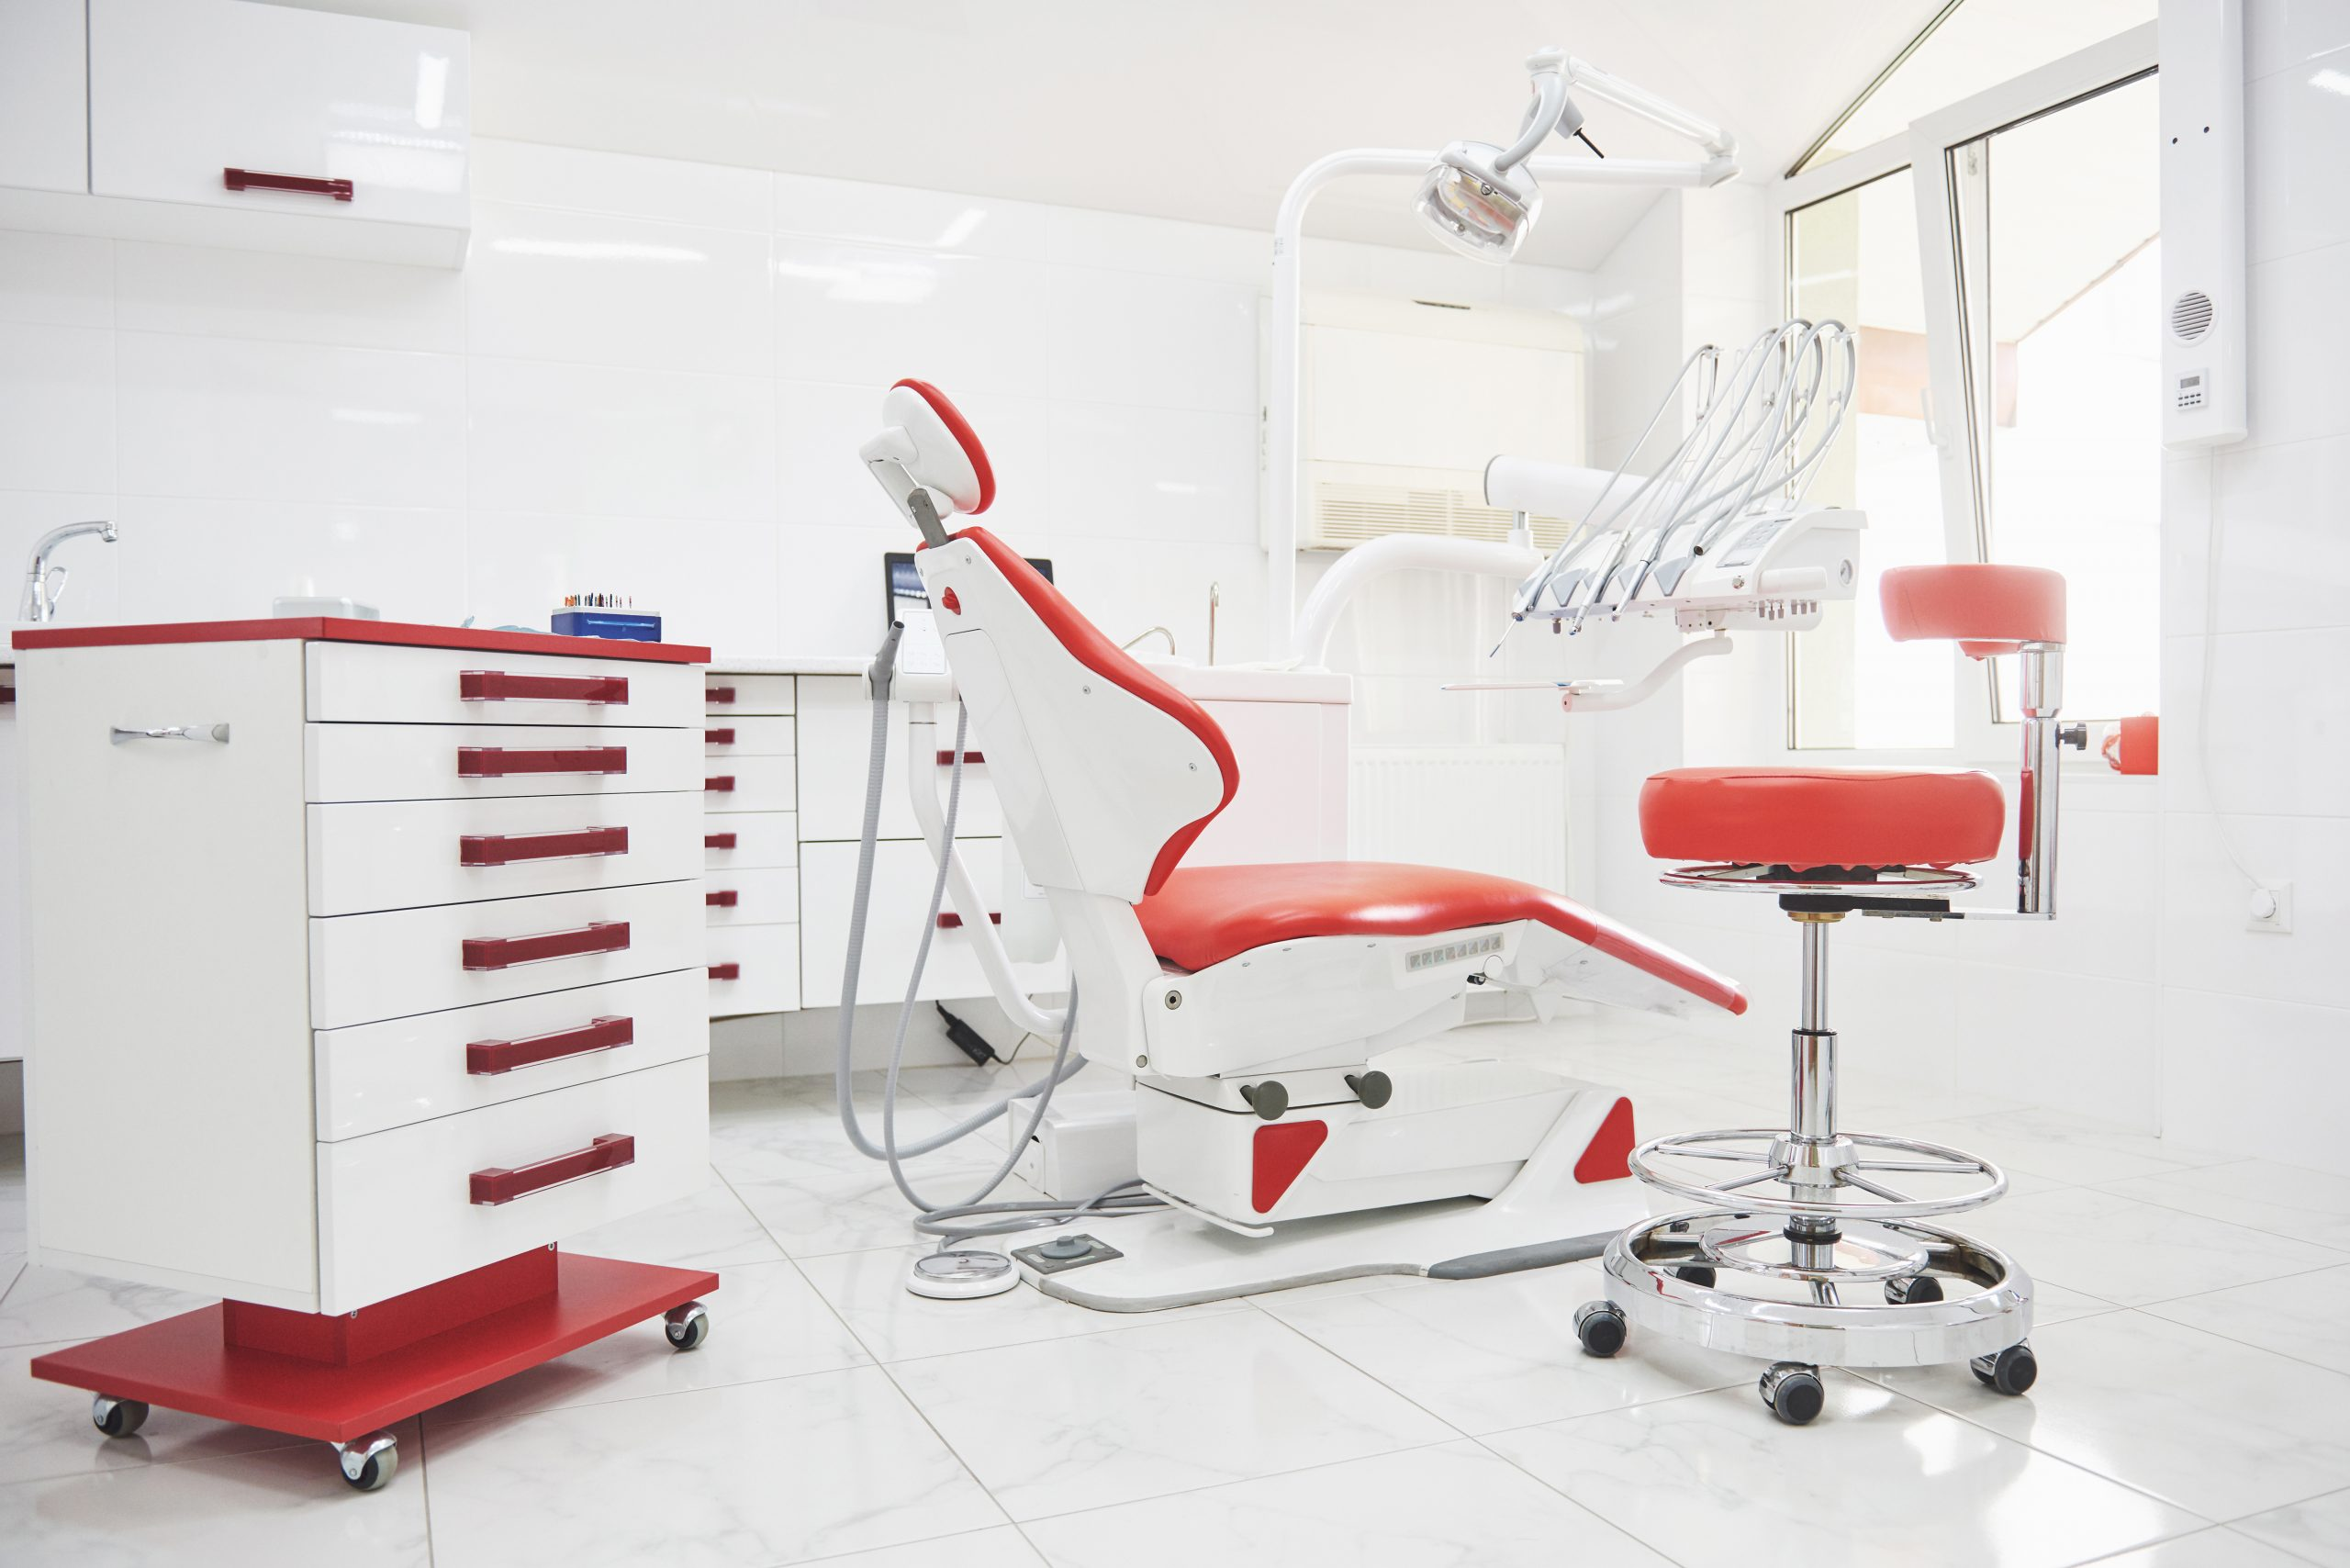 Dental clinic interior, design with chair and tools. All furniture in the same color.